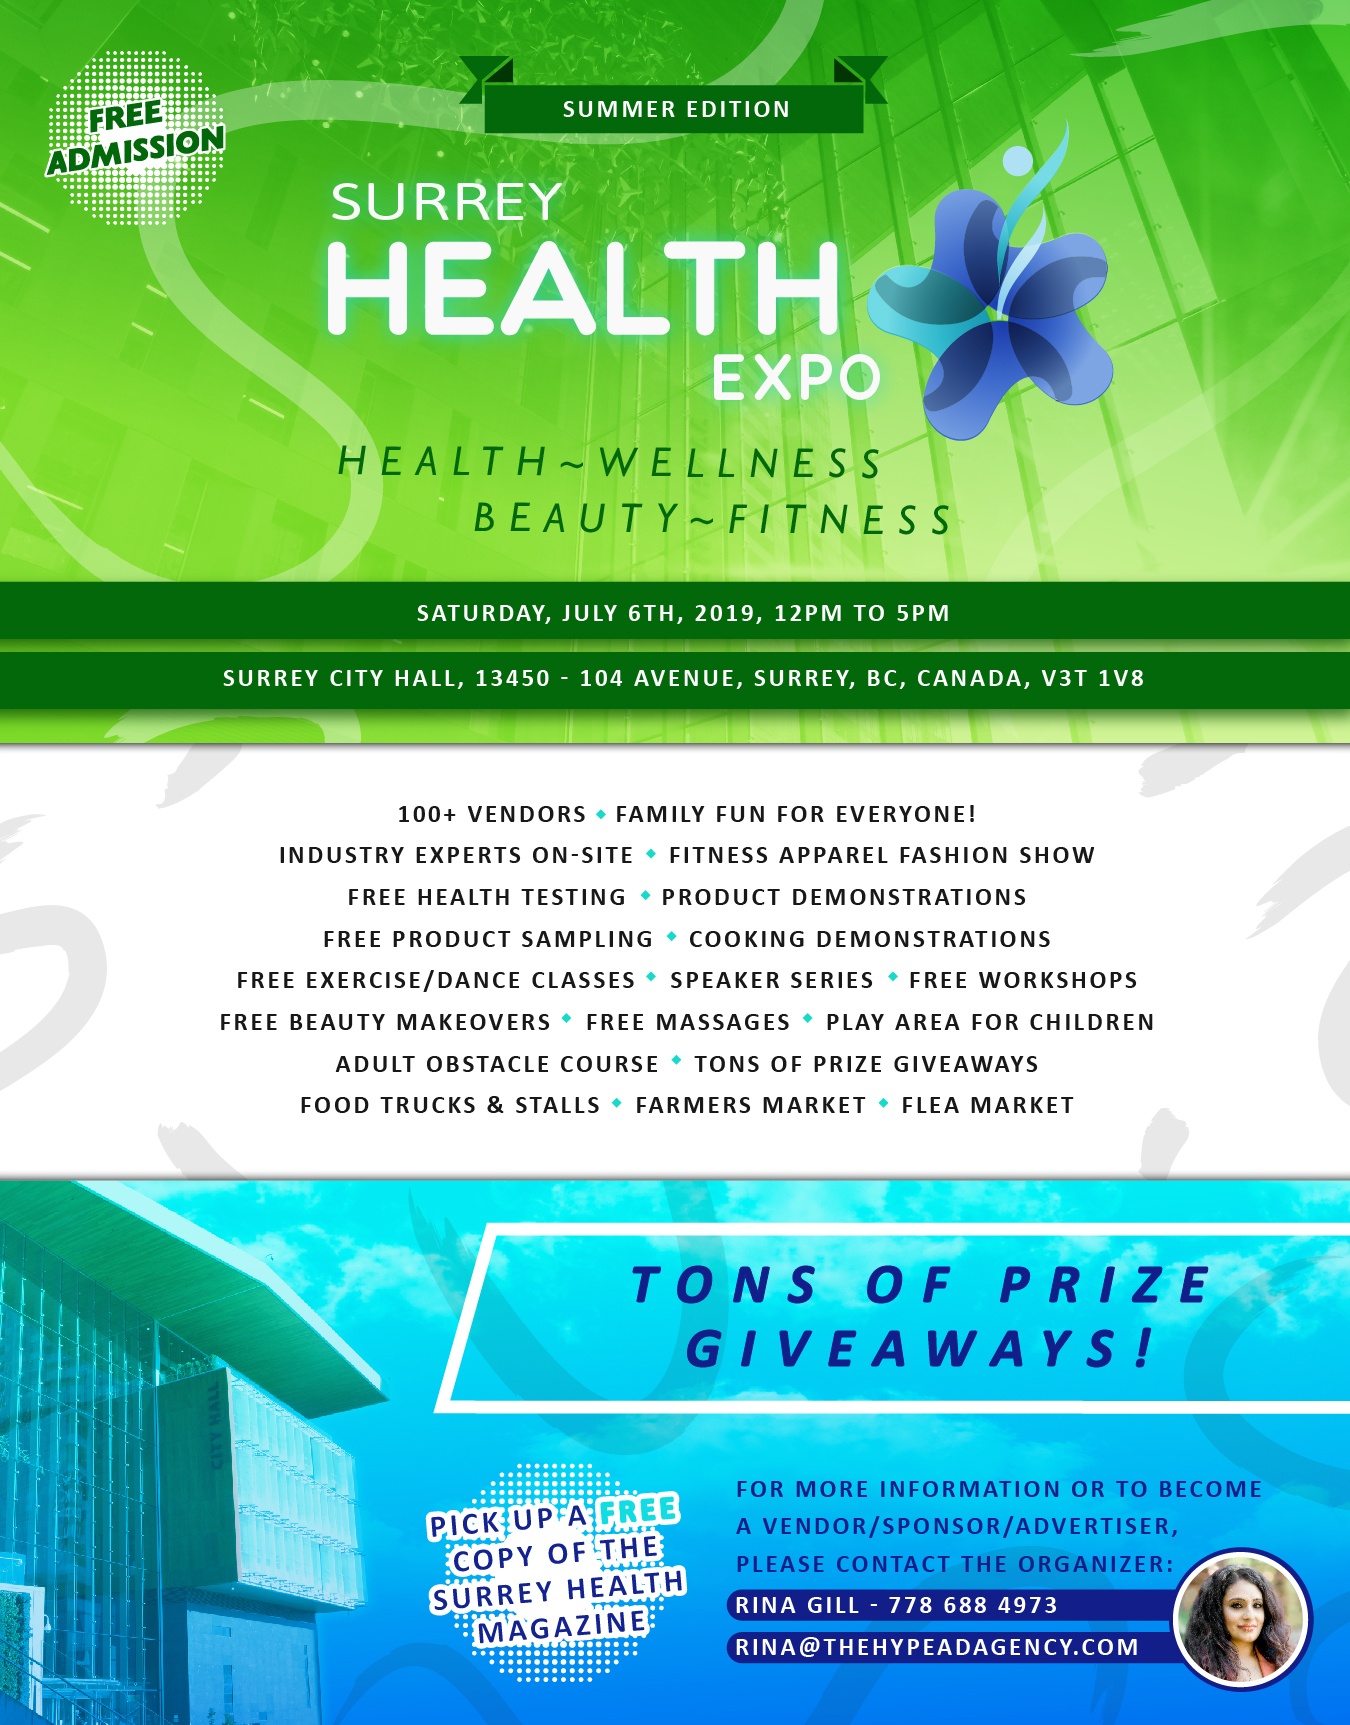 Surrey Health Expo taking place next month